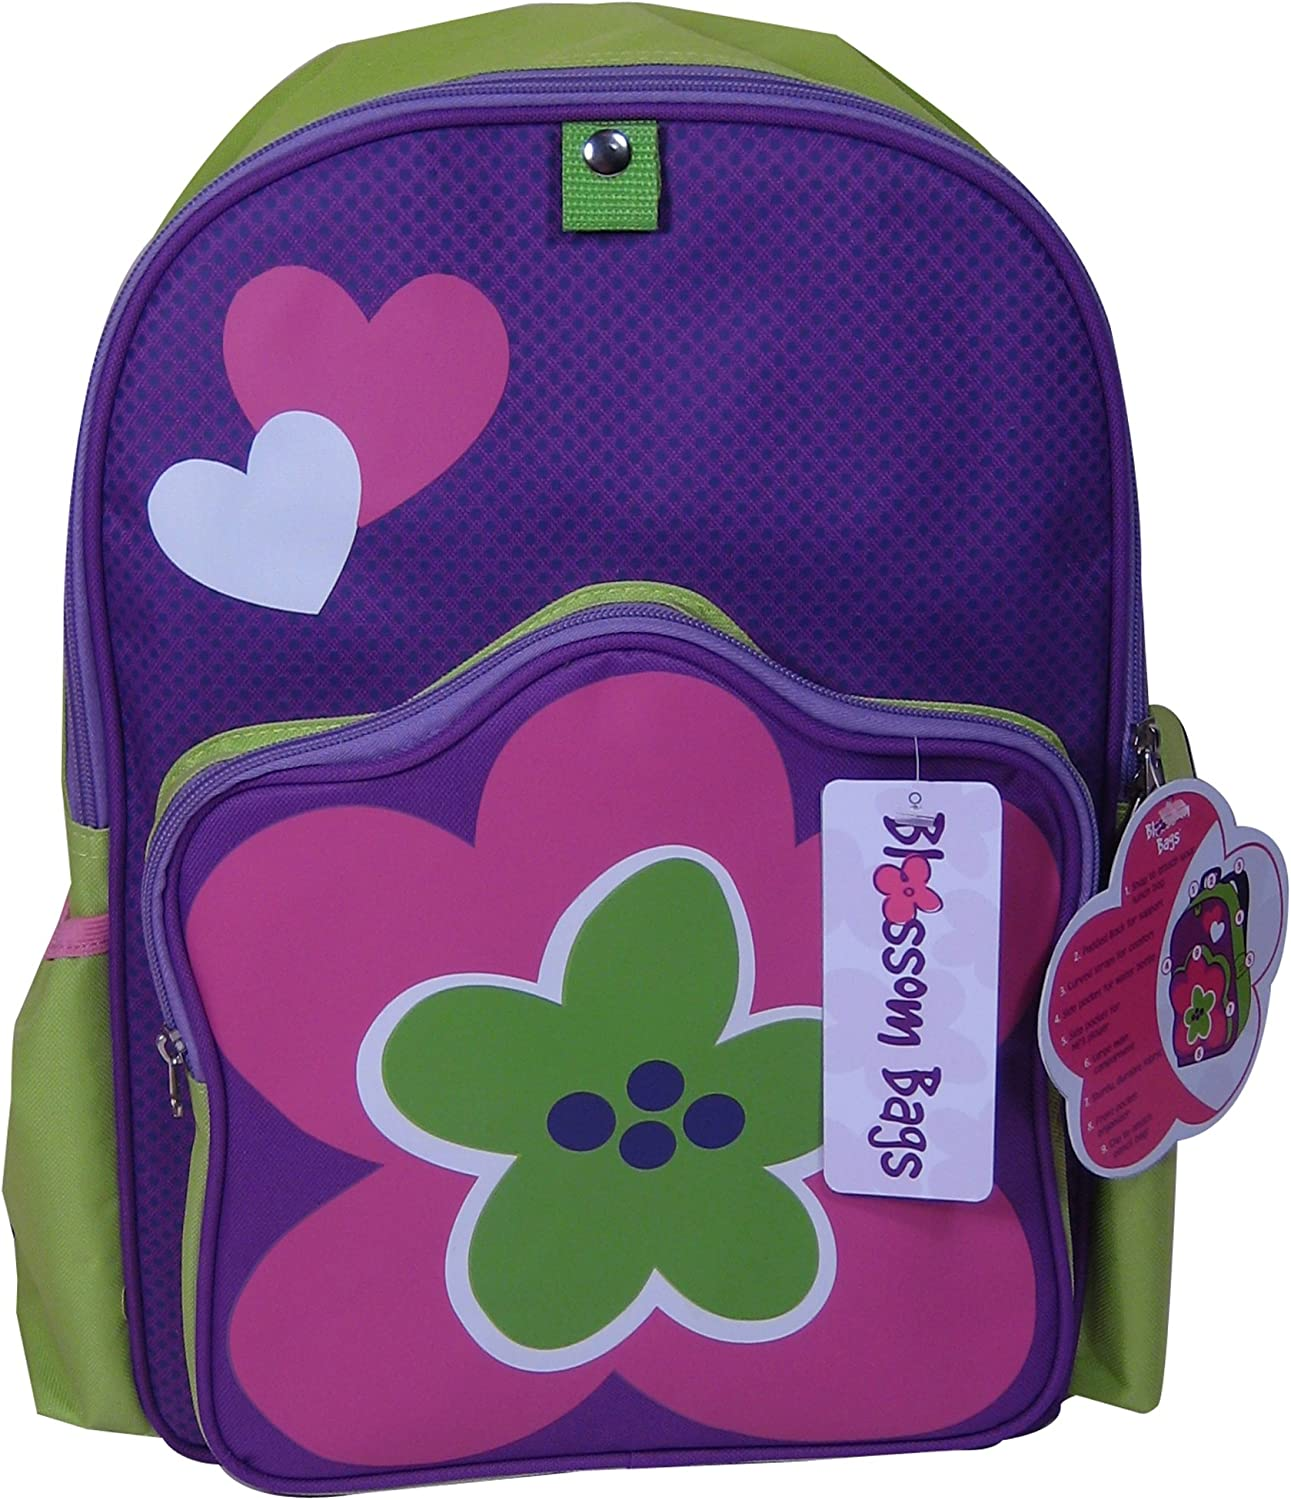 Neat-Oh Direct stock discount Blossom Max 50% OFF Bags Backpack Green